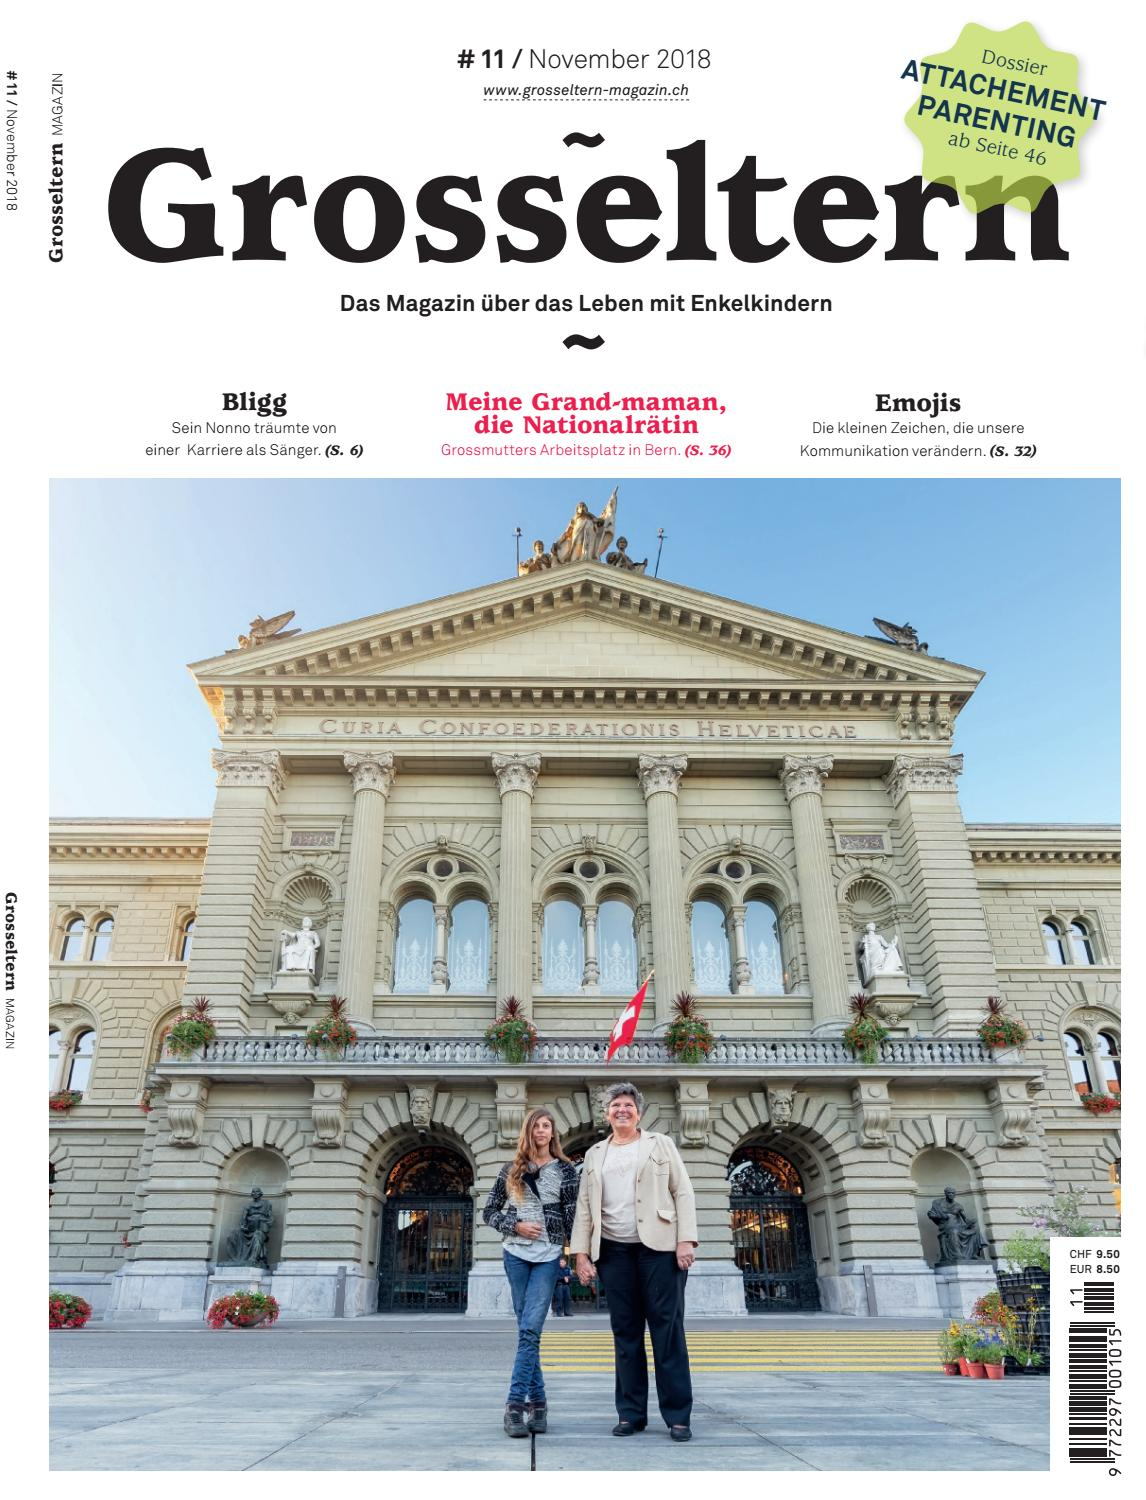 Grosseltern Magazin 112018 By Grosseltern Magazin Issuu